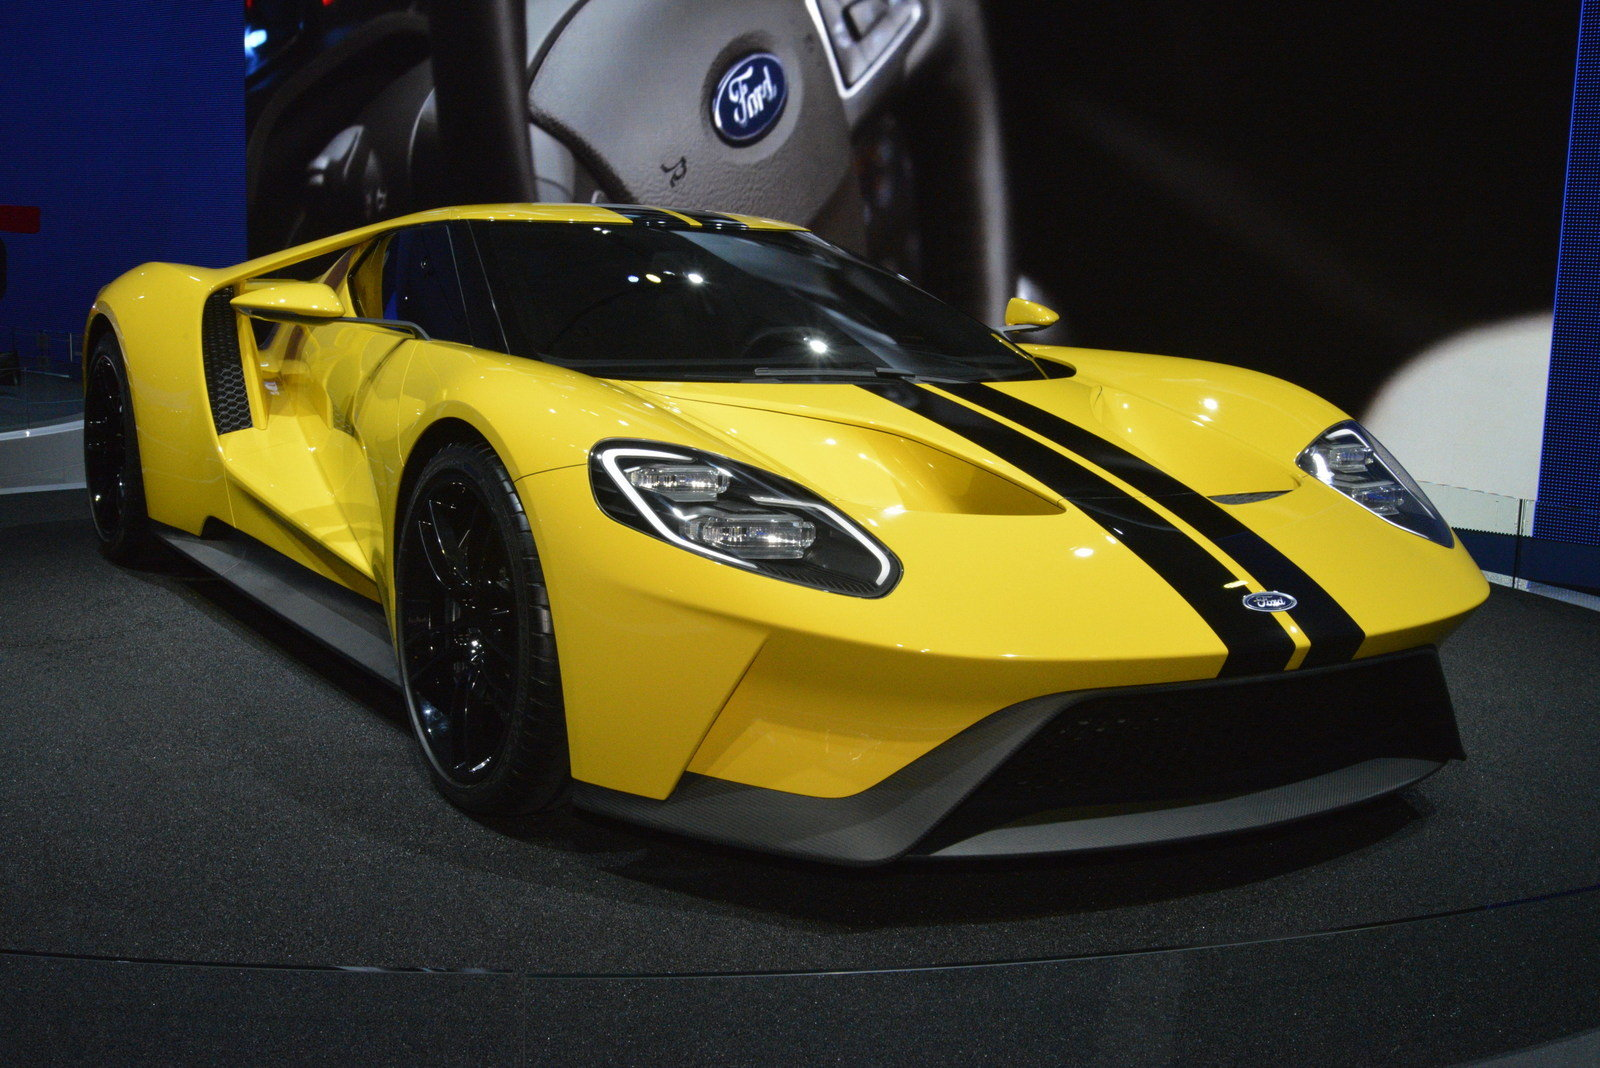 2017 ford gt picture 656405 car review top speed for Ford gt 2017 motor